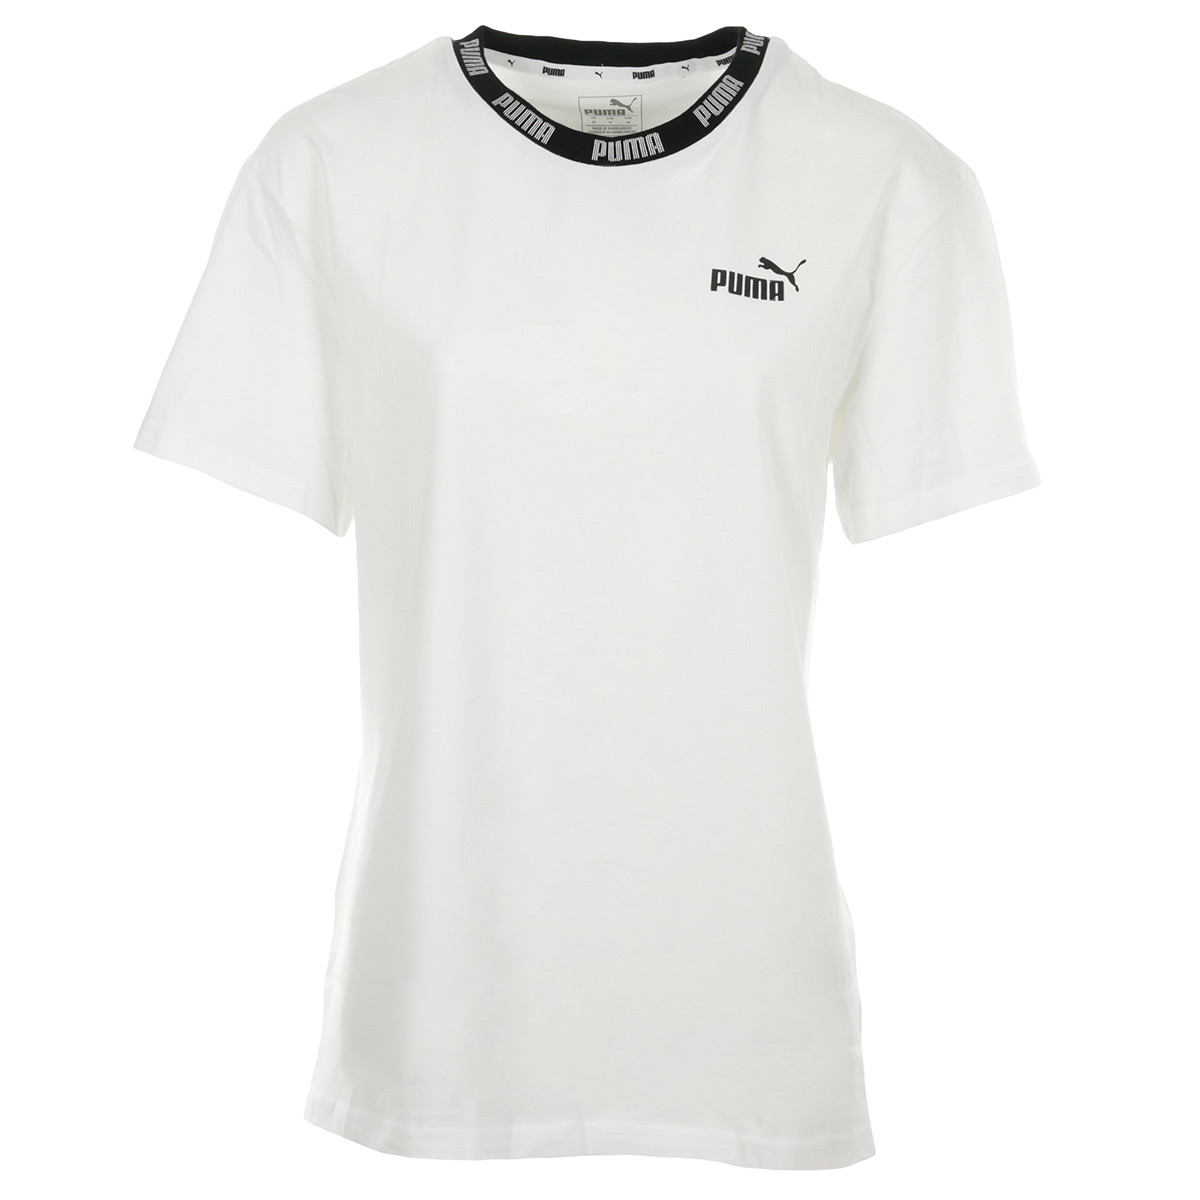 Puma Amplified Boyfriend Tee